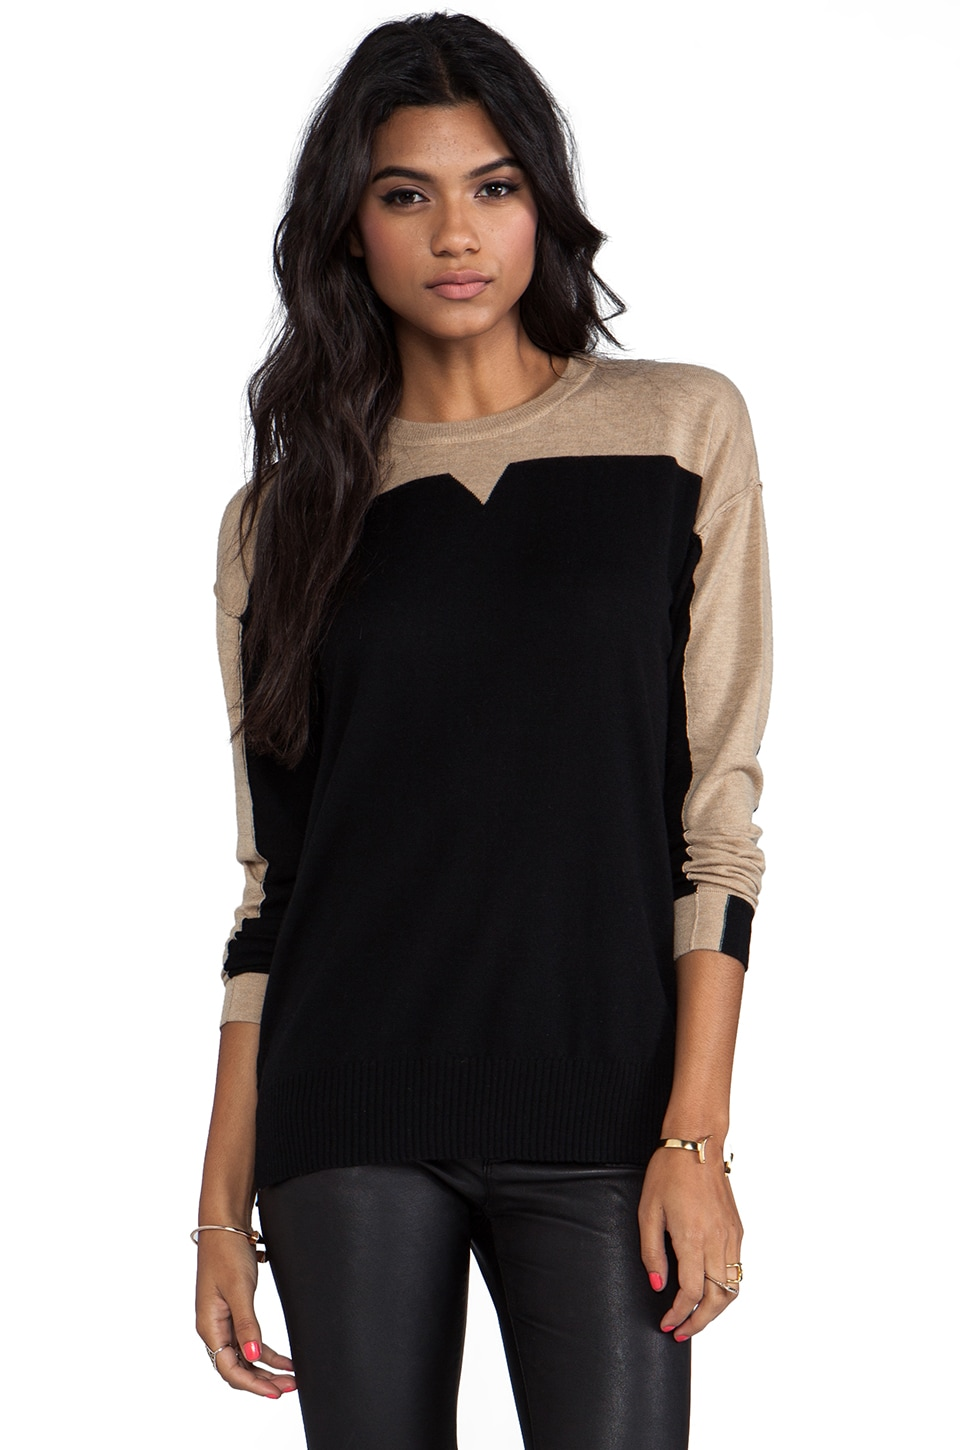 Nanette Lepore Elroy Sweater in Black/Camel